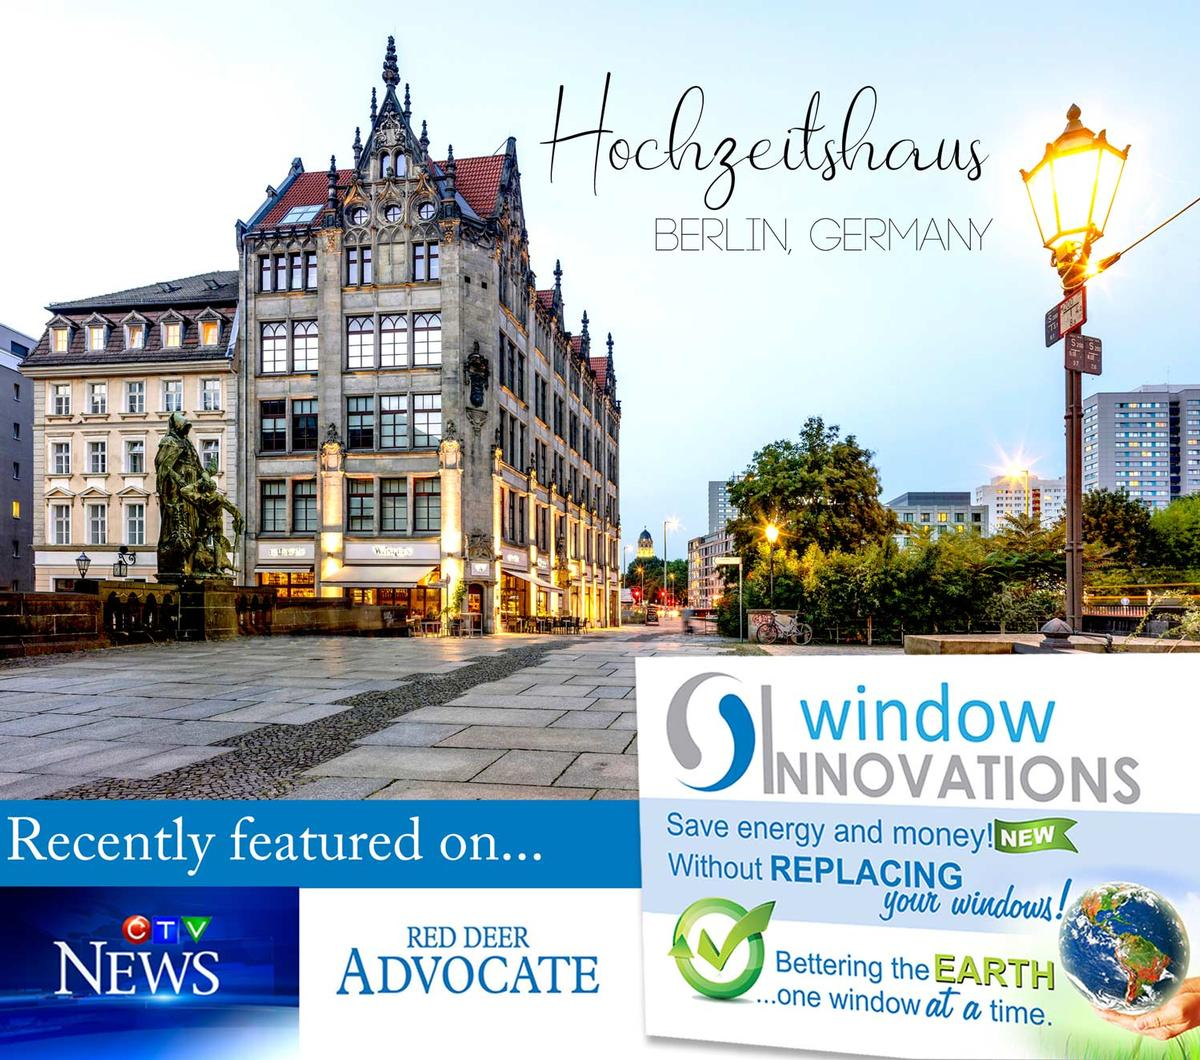 Hochzeitshaus Berlin Germany had 252 windows coated with the liquid glass insulation offered by Windows Innovations.  Improving the efficiency of the windows by 75%